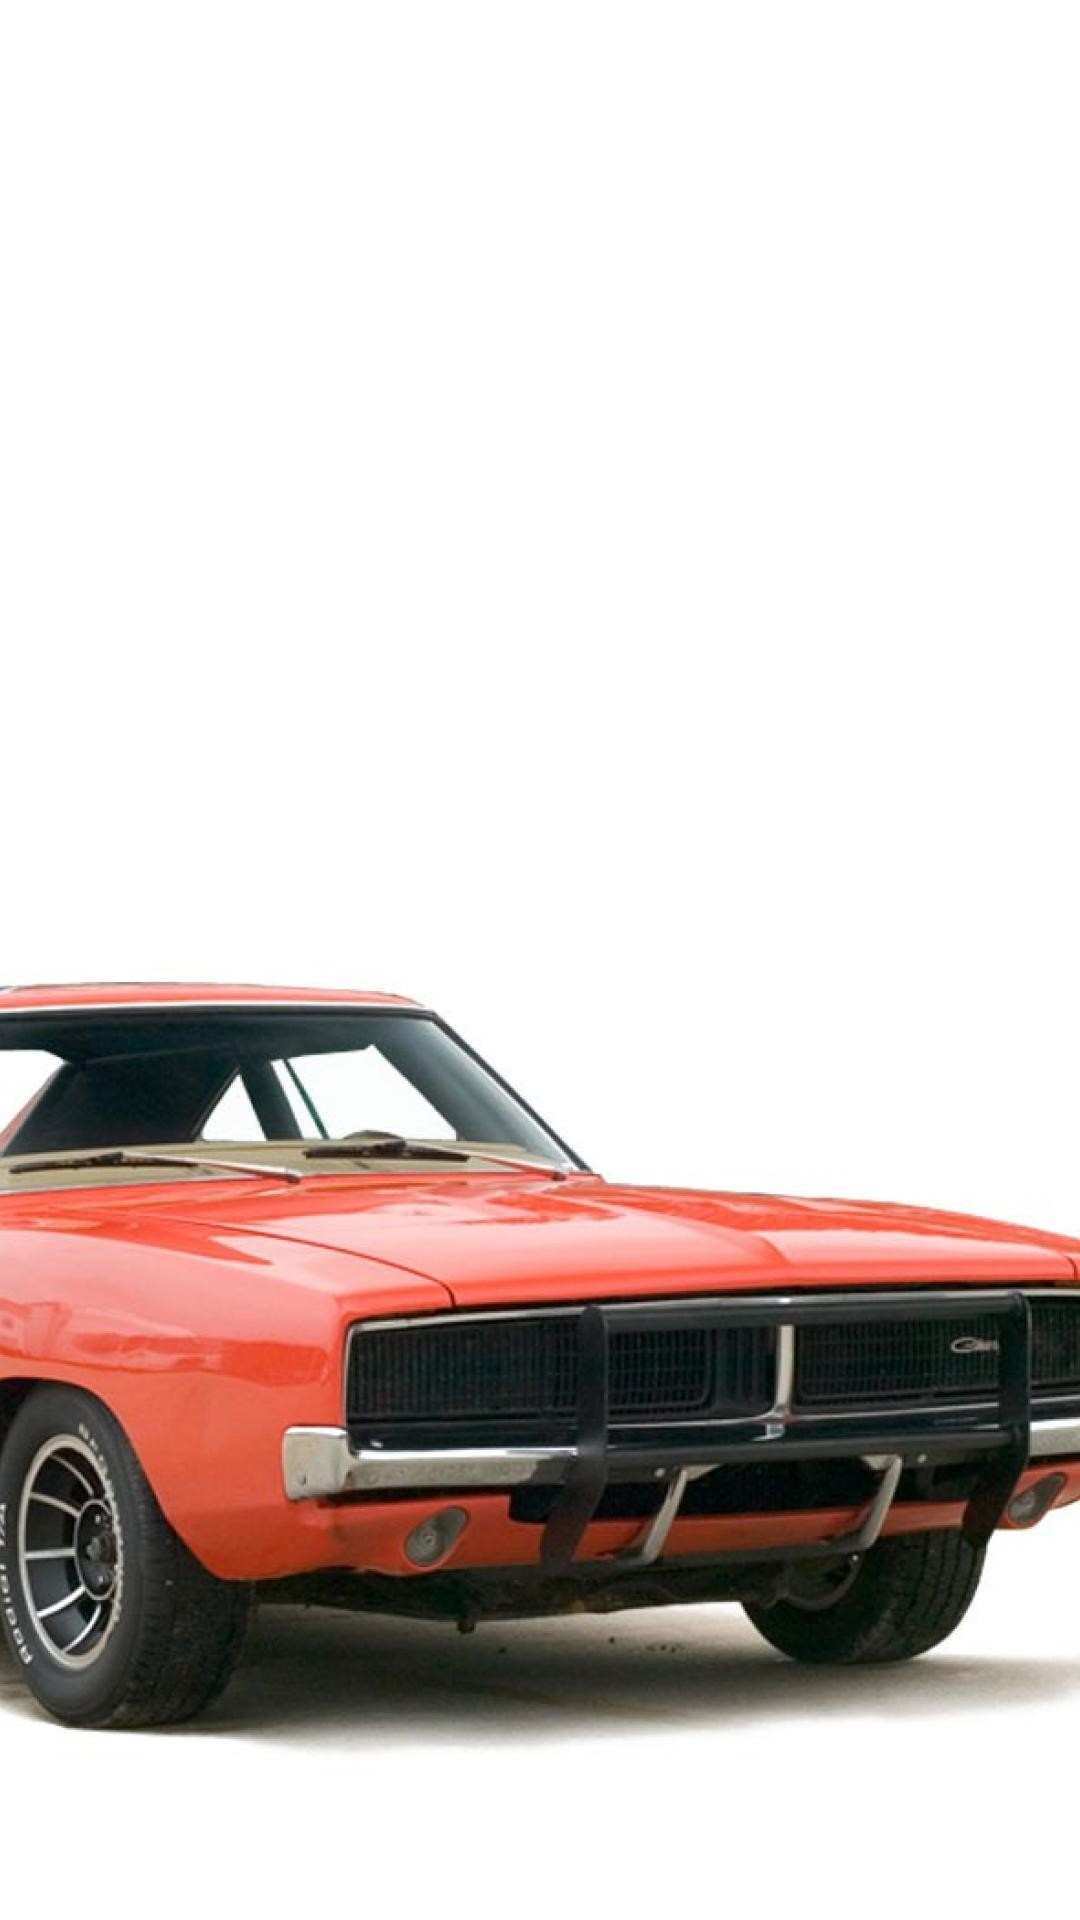 1080x1920 ...  ScreenHeaven General Lee cars desktop and mobile background